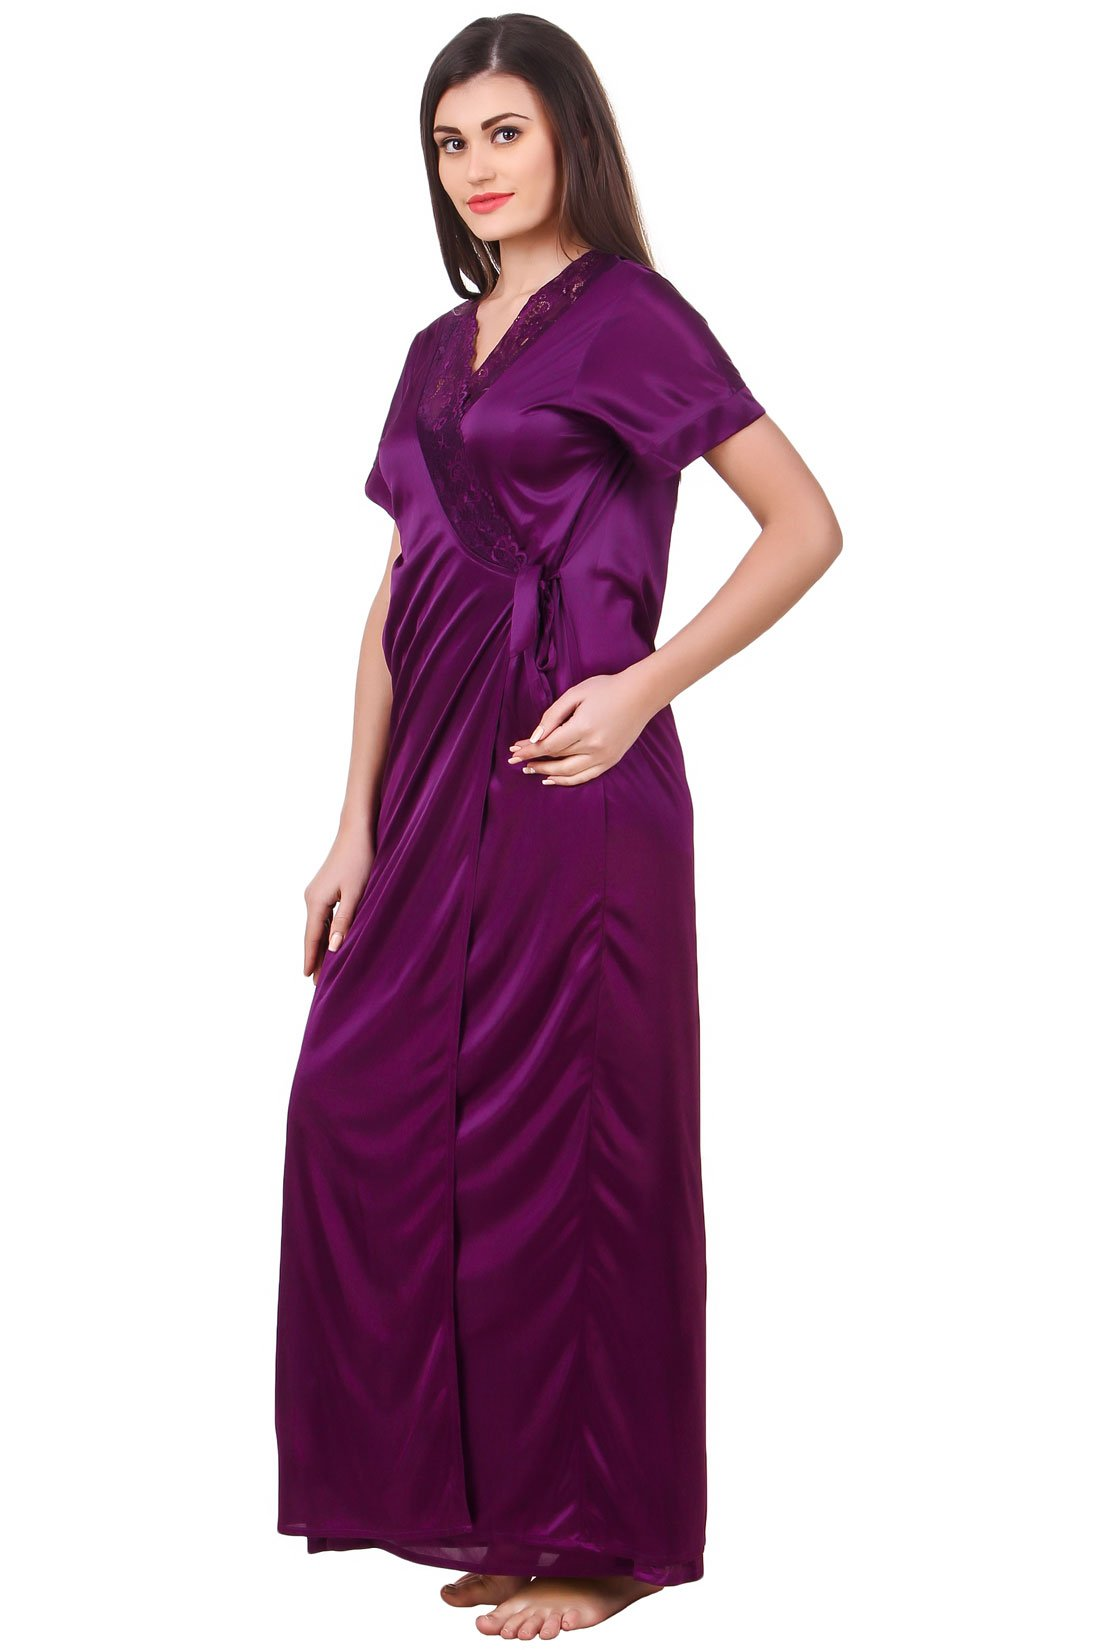 Grace Plus Size Satin Nightwear Set